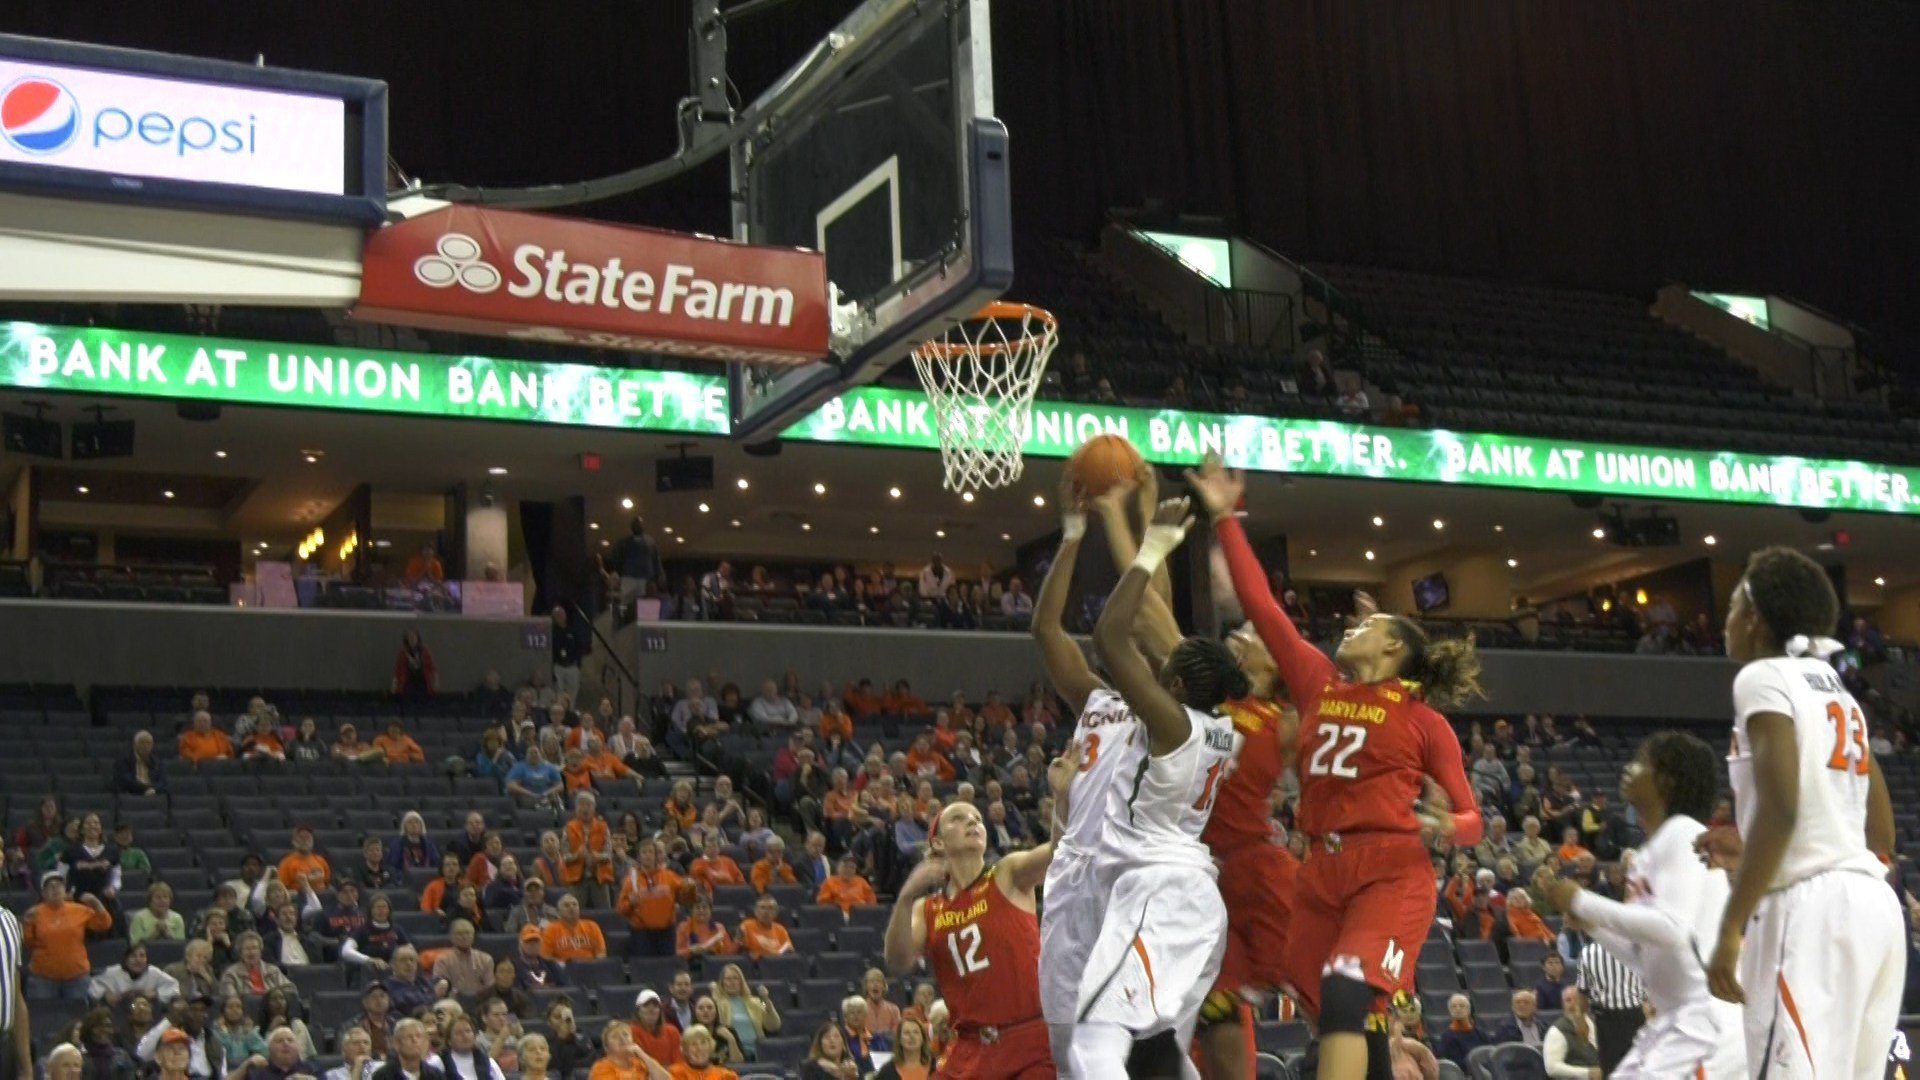 The Cavaliers were unable to secure a rebound in the final seconds against Maryland